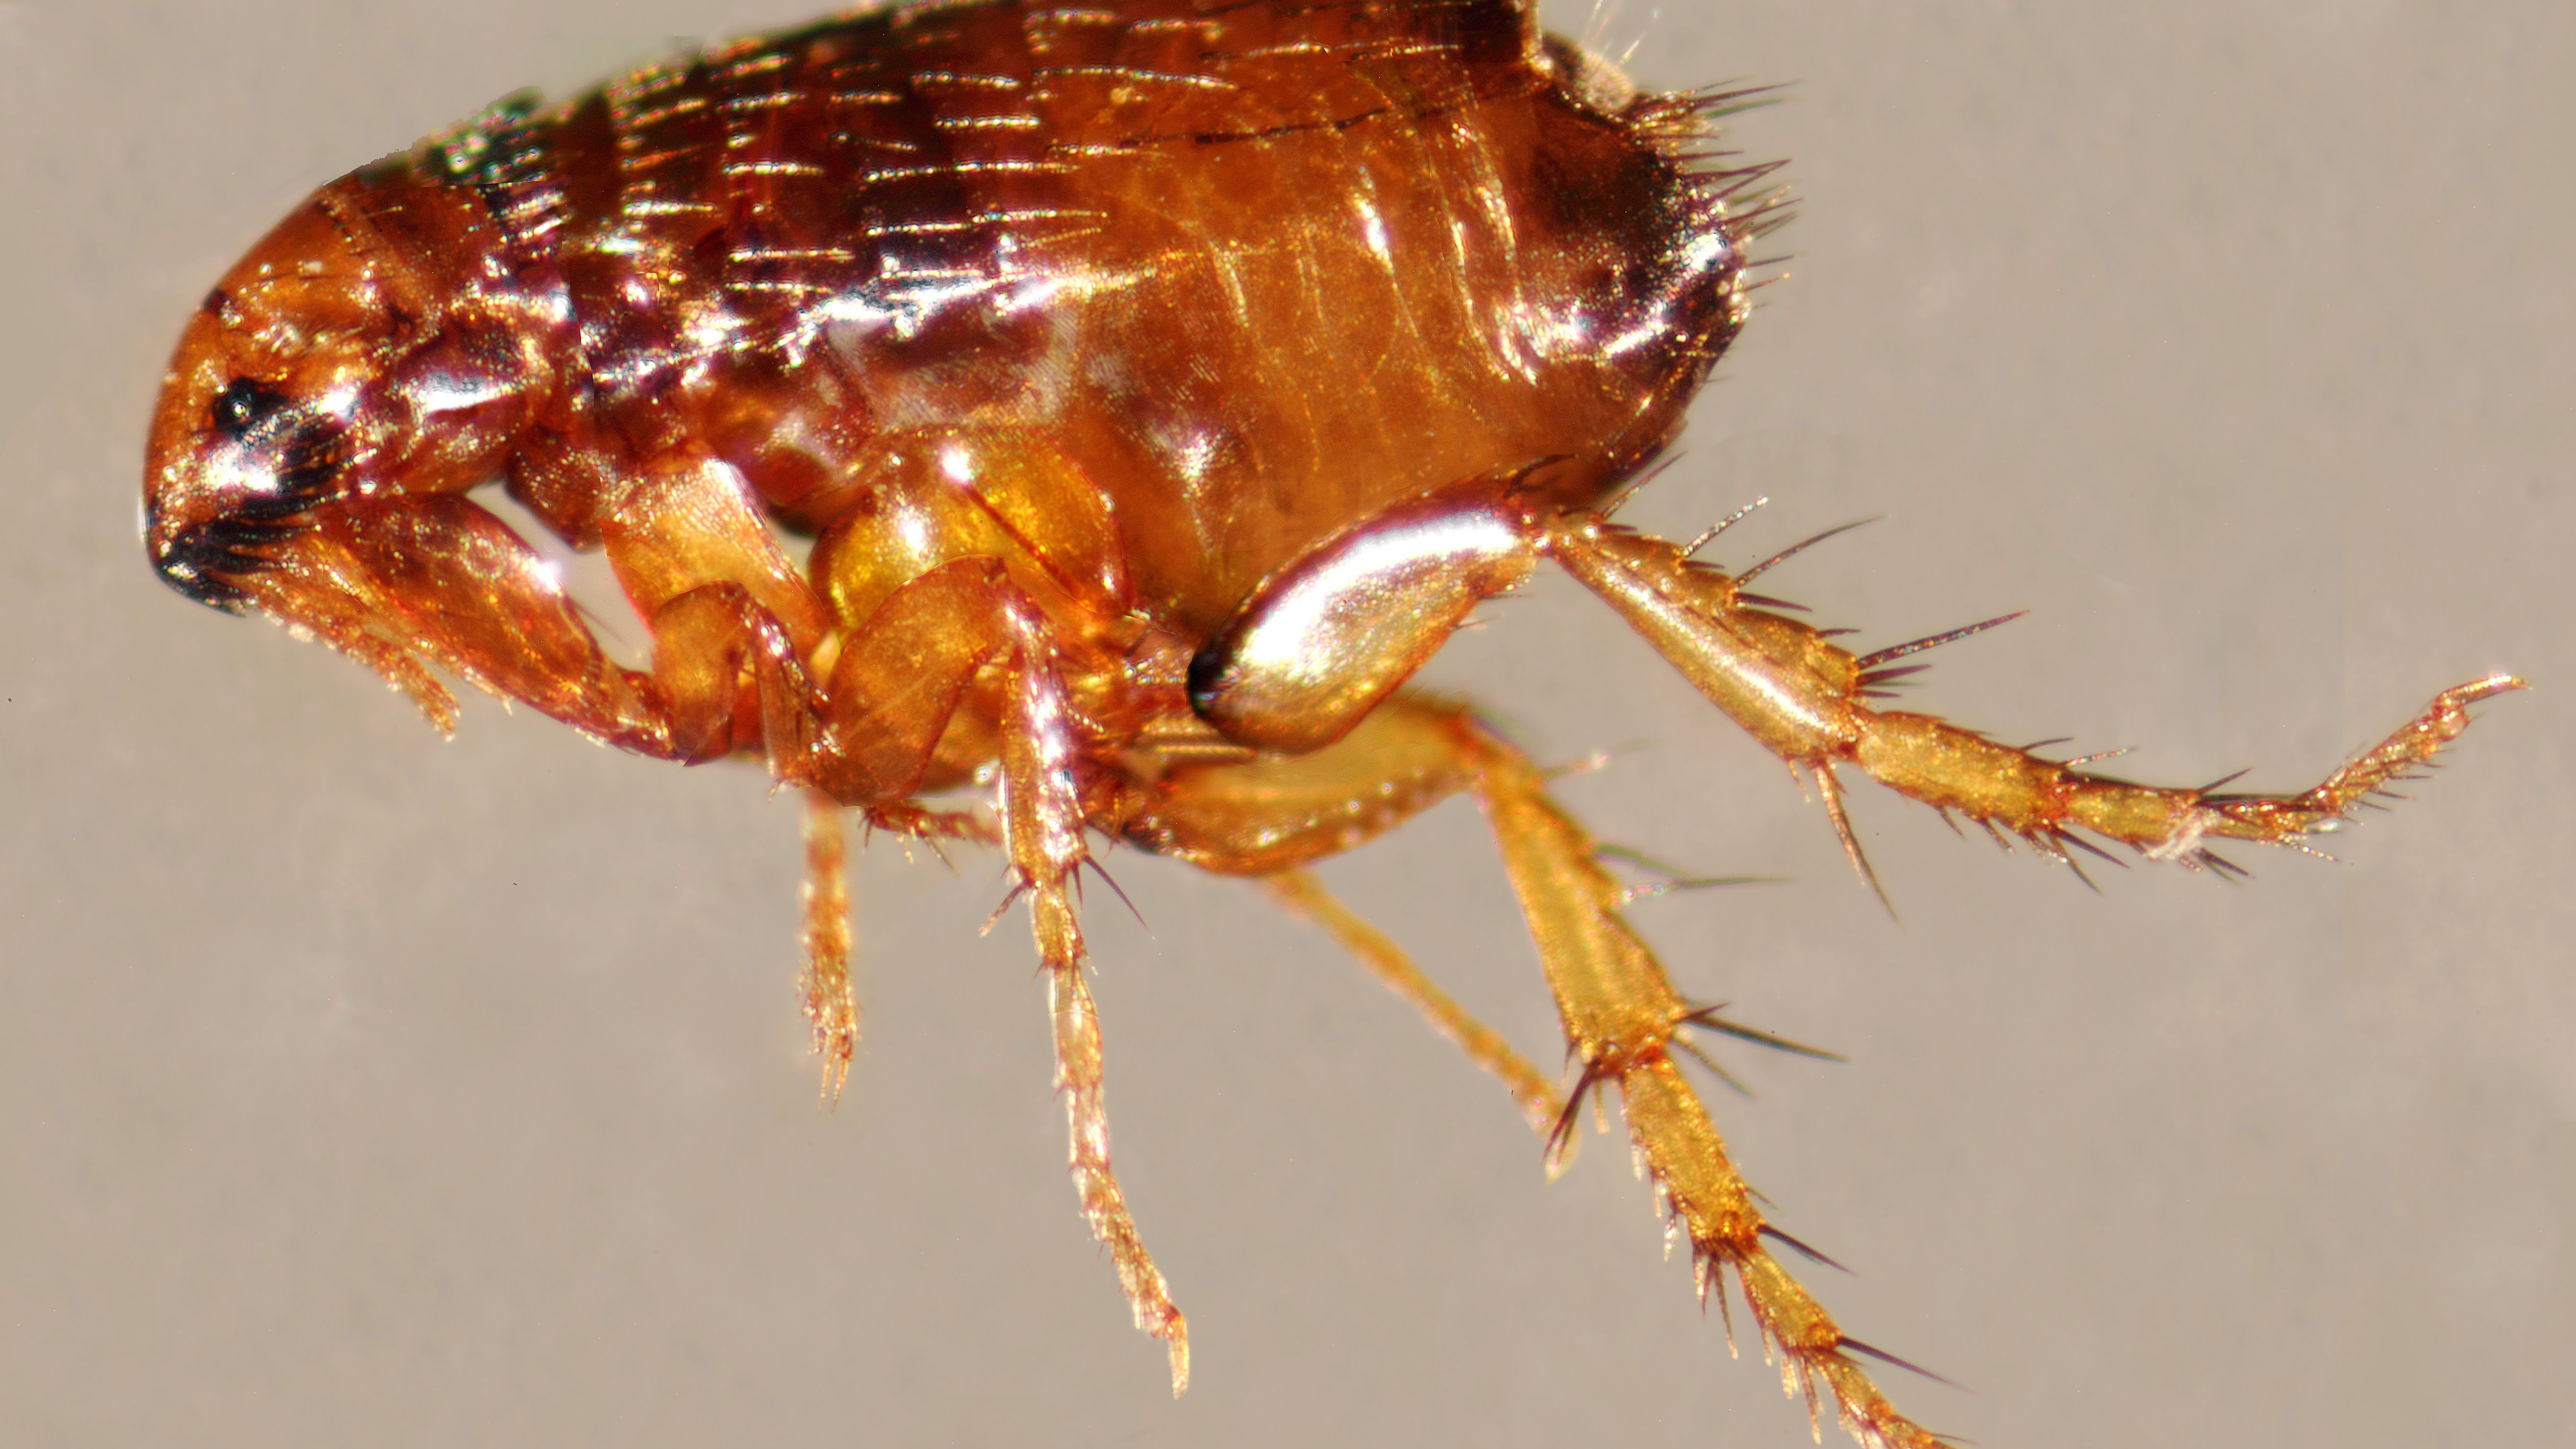 10 Fascinating Facts About Fleas